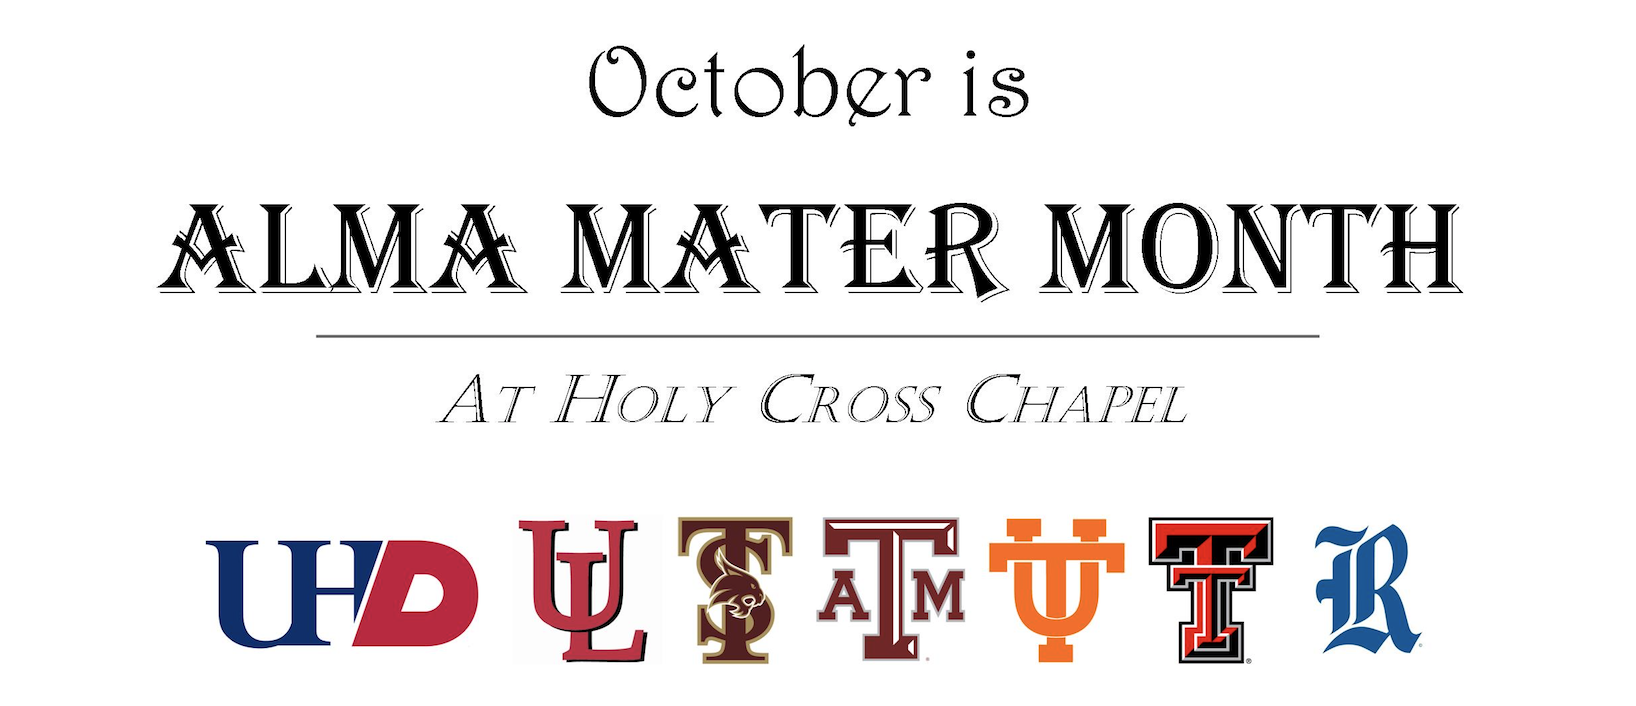 "Alma Mater Month   Dear Friends of Holy Cross Chapel:  If at times you get a bit down when you hear of young people abandoning religion when they get to college, you need to also hear about the exciting work being done at many of our universities to strengthen and spread the Faith, and how students are embracing it.  I want to introduce to you ""Alma Mater Month"", a month-long event we are launching at Holy Cross Chapel this October to provide a venue for this rekindling of Hope in the strength of young people's Faith.  We have invited the Chaplains and Development teams of University Catholic Centers to pick a day during the month of October and come to Holy Cross Chapel to reach out to their alumni -to you!- to present their current ministry, and their plans and projects to promote a dynamic, joyful, and generous life of Faith among the current students at your Alma Mater.  We want to leverage the beautiful facilities of Holy Cross Chapel, and its ideal location, smack at the center of Downtown Houston, for an alumni gathering that is easy for each Catholic Center to organize and very easy for the alumni -especially those working within walking distance- to attend.  The schedule of each event is:  11:35 AM Holy Mass (celebrated by the Chaplain or an alumnus)  12:15 PM Luncheon in the 2nd floor, while the Development team makes presentation  1:15 PM End  While only a few Catholic Center teams were able to work Alma Mater Month into their busy calendar in this inaugural year, the response has been very enthusiastic, and many more are planing on it for next year. Here is the list coming this October:  10/7: University of Houston Downtown  Celebrant: Holy Cross Chapel Priest  RSVP to  fortunatop@uhd.edu  by 10/6  10/10: University of Louisiana at Lafayette  Celebrant: Rev. Bryce Sibley, Chaplain  RSVP to  ourladyofwisdom.org/alumni  by 10/9  10/22: Texas State University  Celebrant: Rev. Craig DeYoung, Chaplain  RSVP to  Tdeming@txstatecatholic.org  by 10/21  10/23: Texas A&M University  Celebrant: Rev. Ryan Stawaisz, Alumnus 2011  RSVP to  www.aggiecatholic.org/holycross  by 10/11  10/24: University of Texas  Celebrant: Rev. Larry Rice, CSP, Chaplain  RSVP to  utcatholic.org/houston  by 10/21  10/29: Texas Tech University  Celebrant: Rev. Carl Paustian, OP, Chaplain  RSVP to  Nathan.Robinett@raidercatholic.org  by 10/28  10/30: Rice University  Celebrant: Holy Cross Chapel Priest  RSVP to  victor.saenz@rice.edu  by 10/29  (To help your Catholic Center have an accurate count for lunch, please RSVP by the requested deadline)  We will have a poster at the entrance of the Chapel with this information for all visitors to see, and fliers will also be available so you can make other friends and coworkers aware of this event for their Alma Mater.  All of us at Holy Cross Chapel are thrilled to be able to cooperate in this small but concrete way in the evangelizing mission of the Church at college campuses.  Many blessings, Fr. Frank Vera"